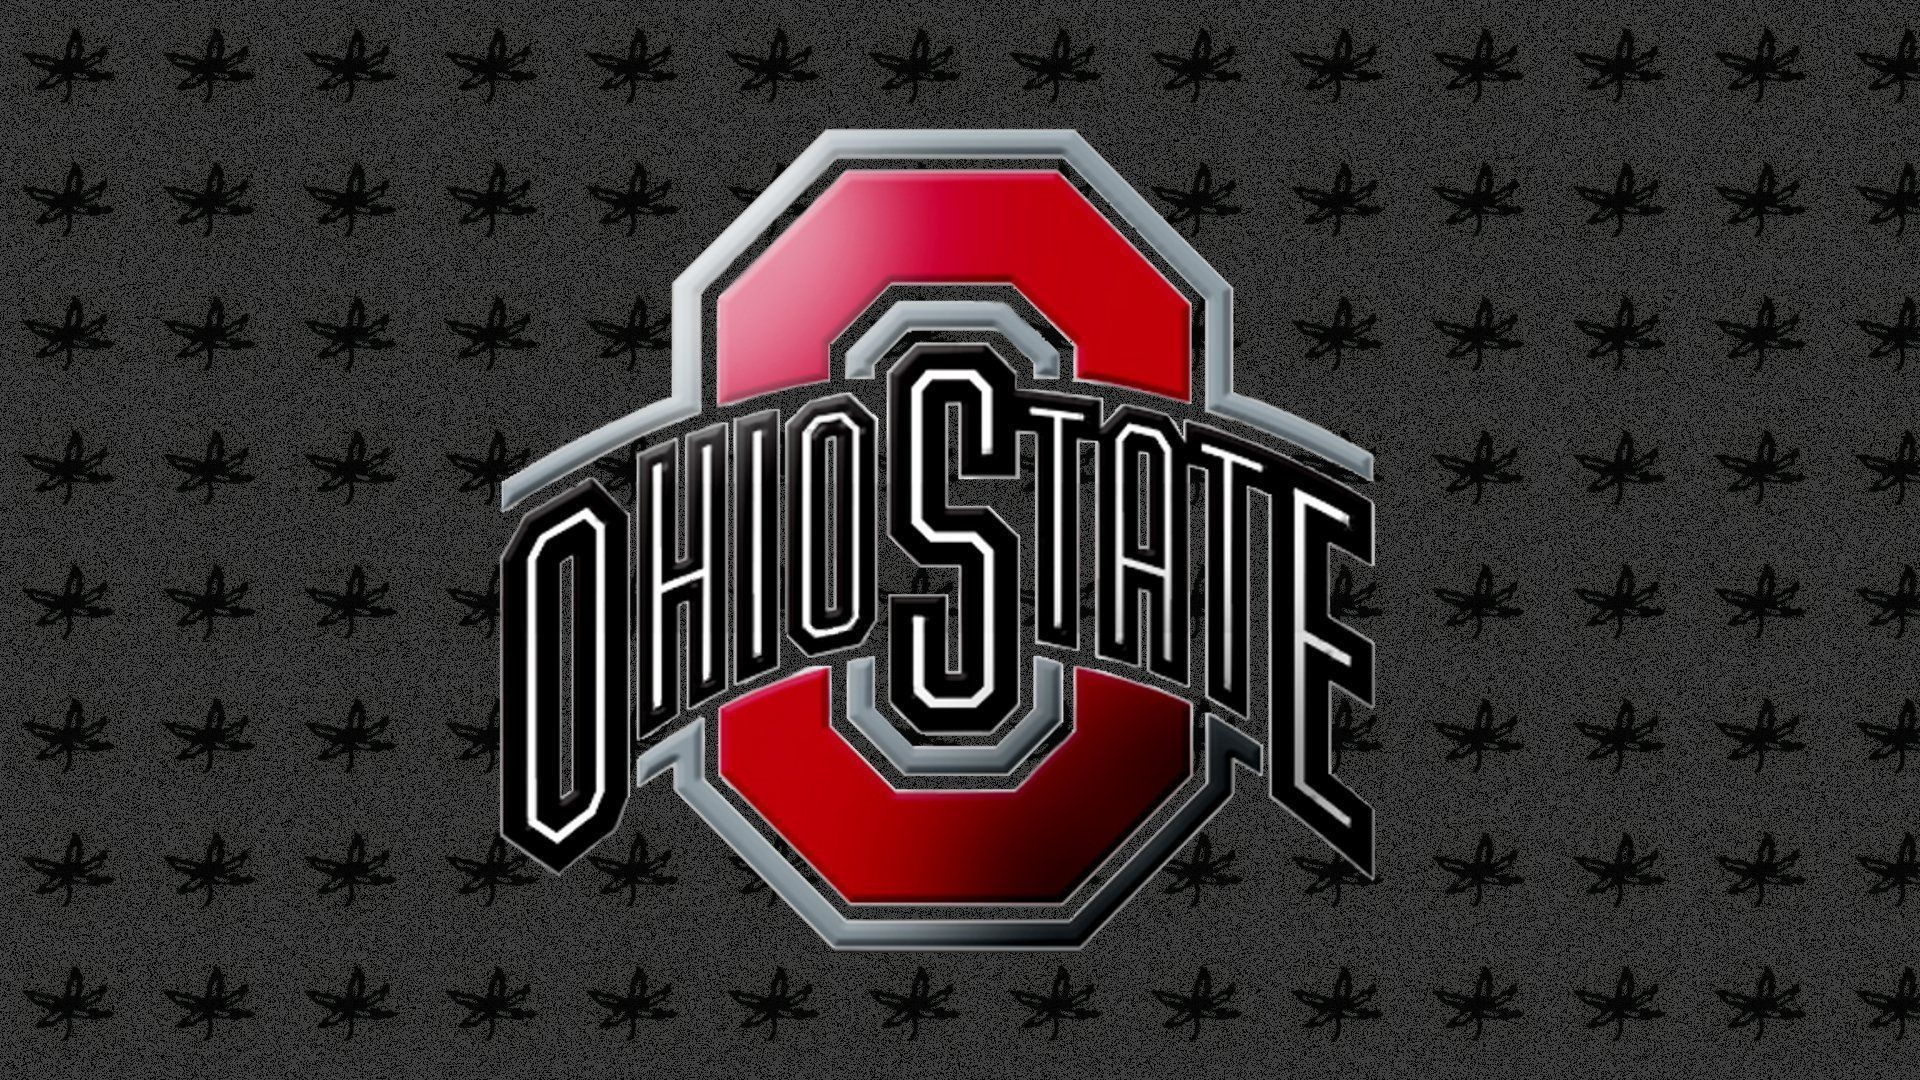 RED BLOCK O TRANSPARENT OHIO STATE Football Sports Background 640×960 Ohio  State Buckeyes Wallpapers (42 Wallpapers) | Adorable Wallpapers | Pinterest  …